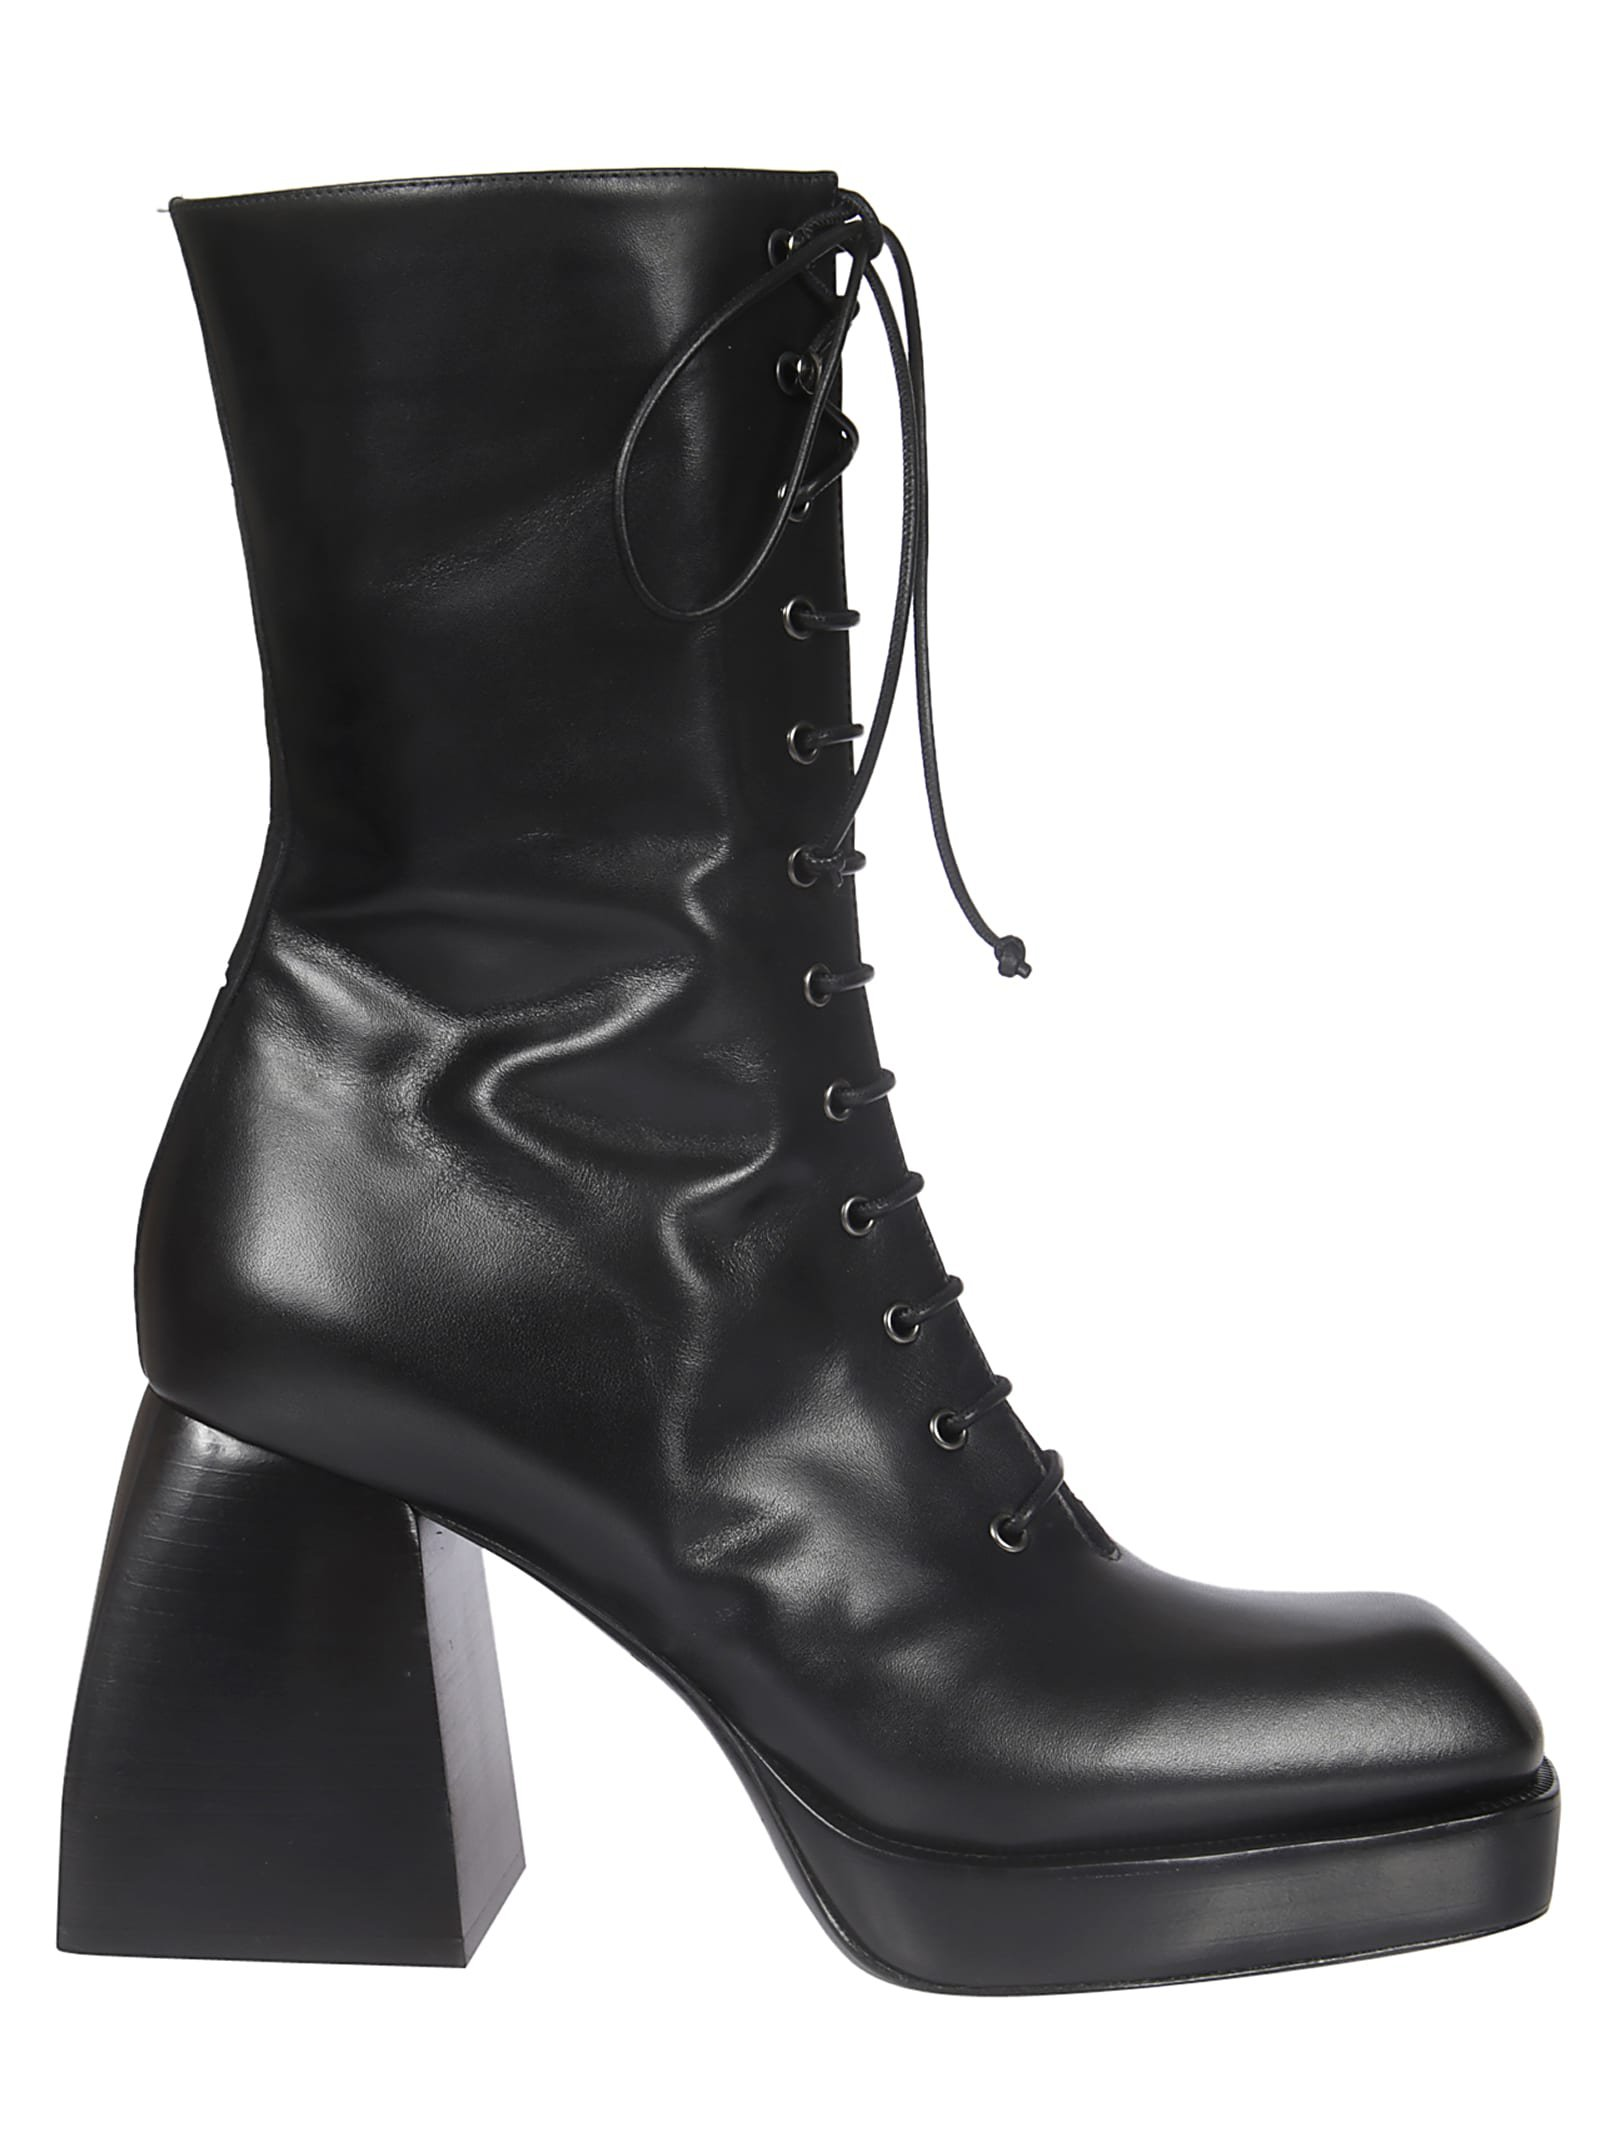 Nodaleto Block Heel Laced-up Boots